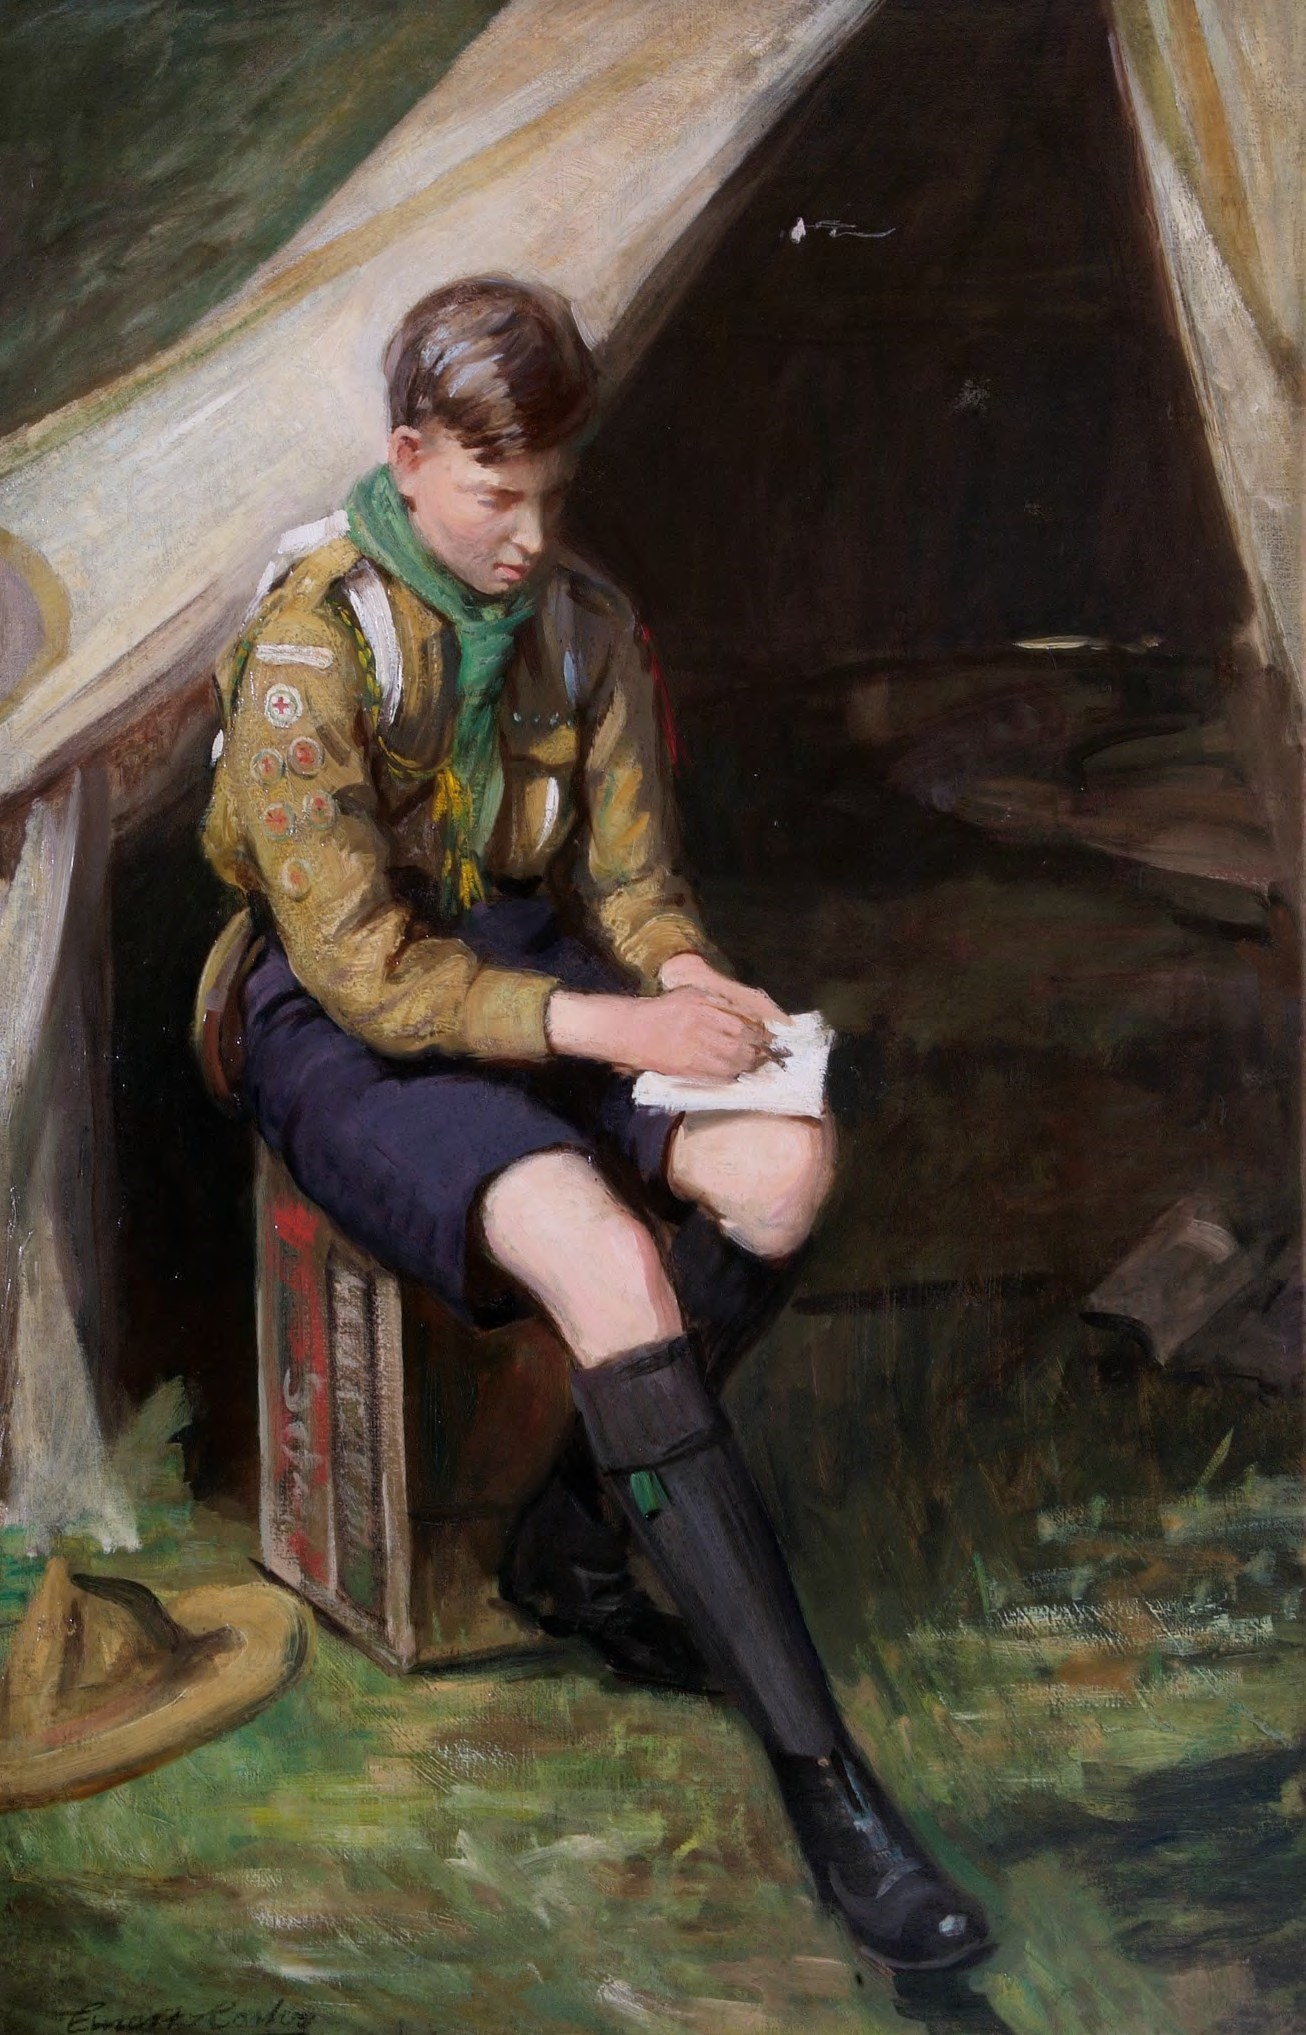 Scout Ernest Stafford Carlos's painting 'Time for Thought'.